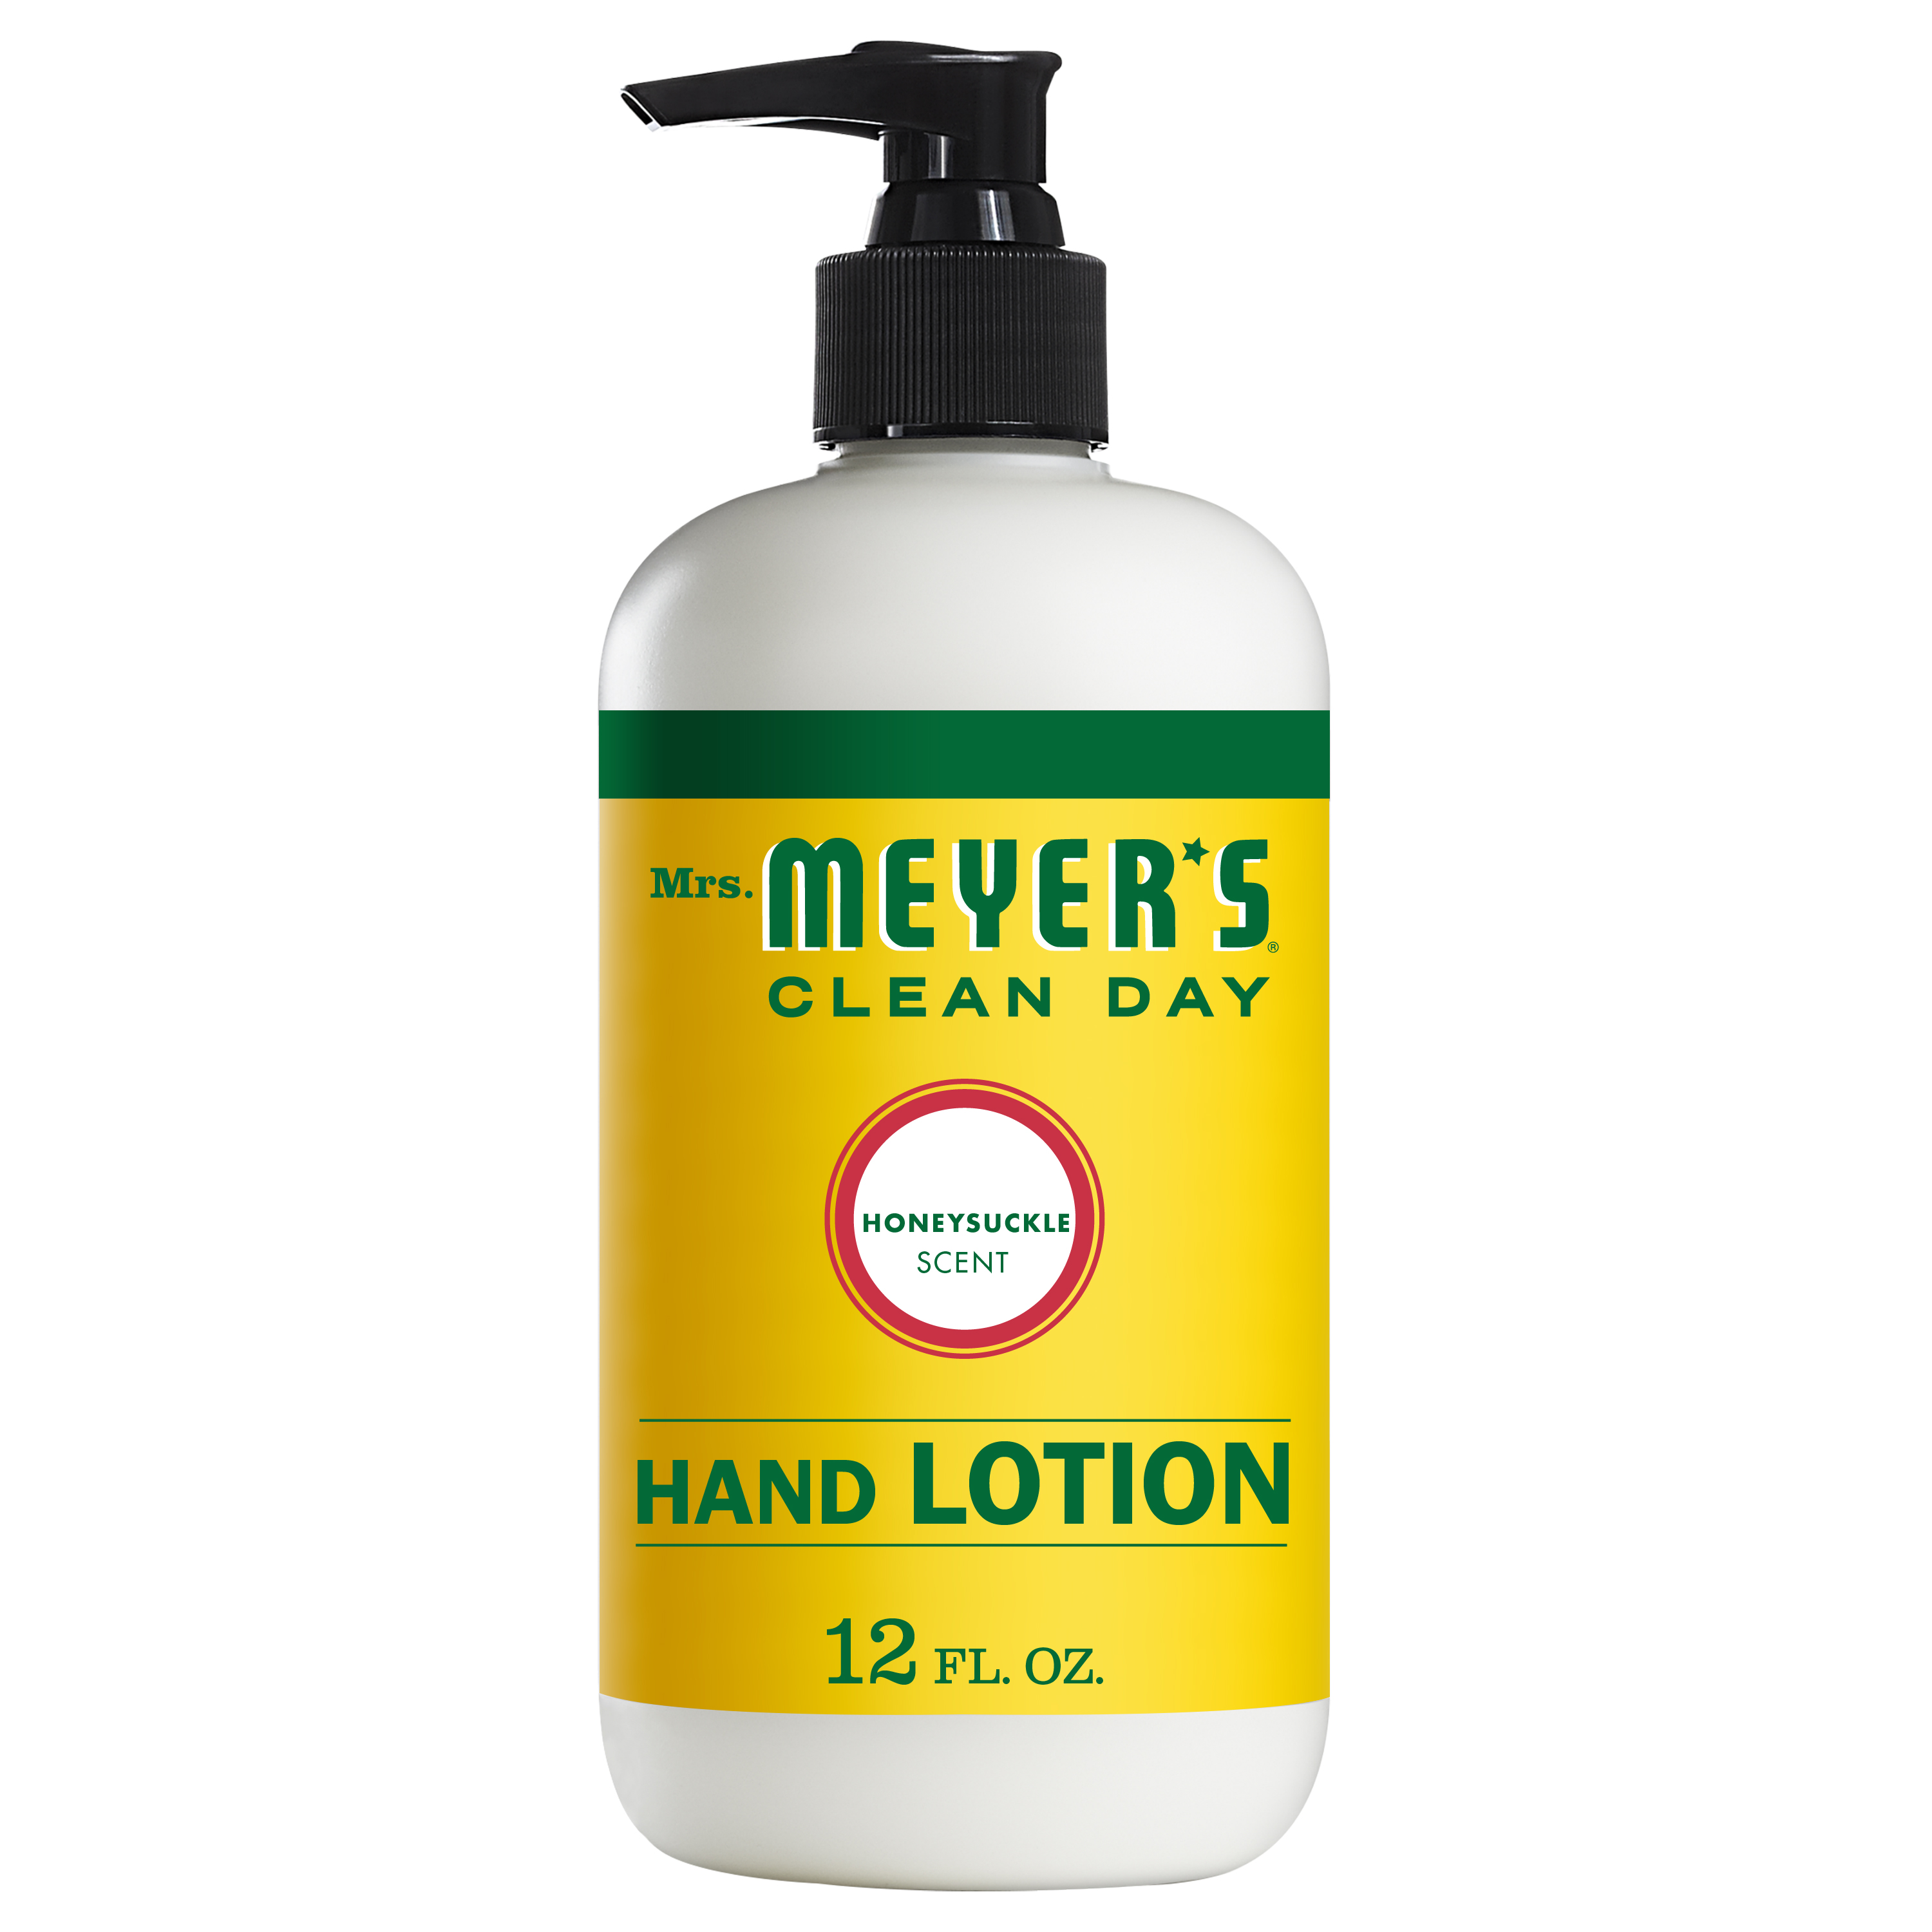 Mrs. Meyer's Clean Day Hand Lotion, Honeysuckle Scent, 12 ounce bottle